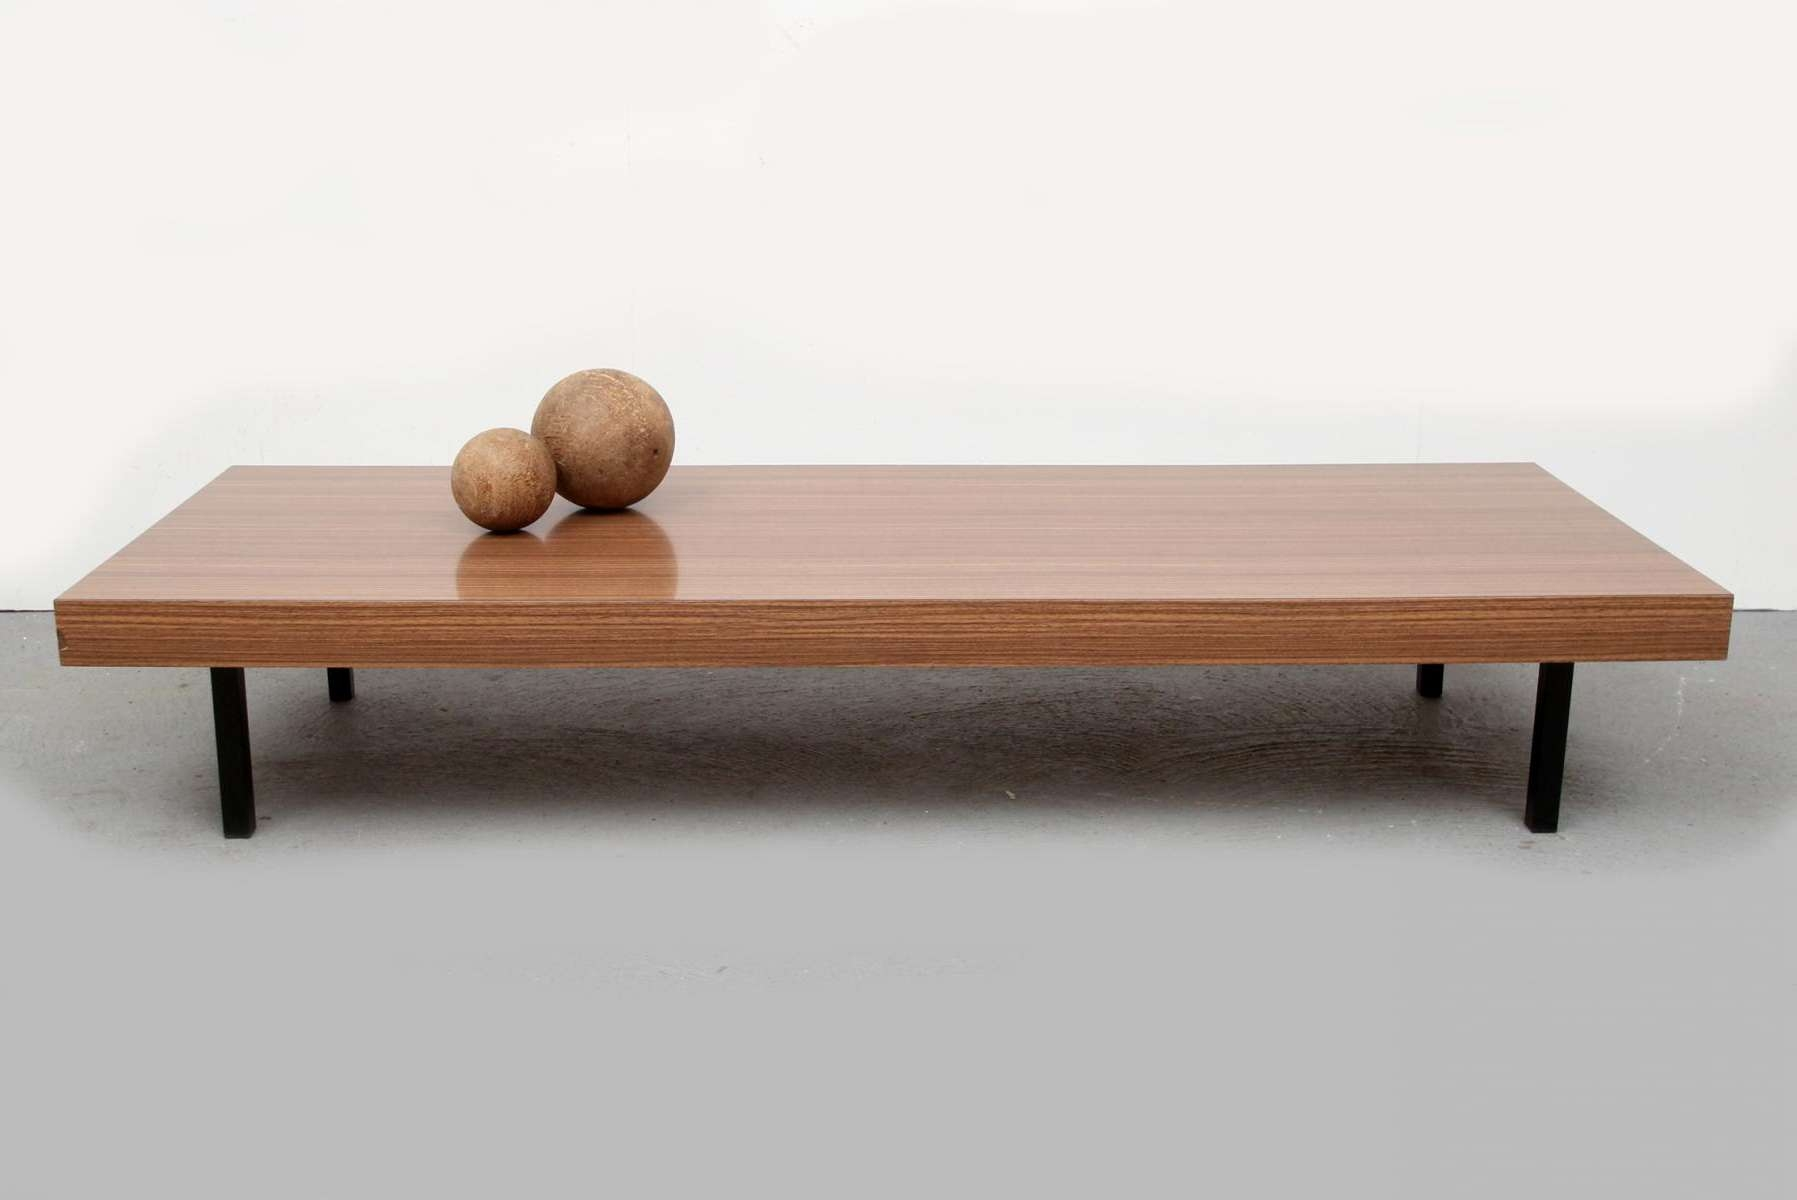 Japanese Style Low Coffee Table 1960S For Sale At Pamono Desi / Thippo Regarding Latest Low Japanese Style Coffee Tables (Gallery 1 of 20)